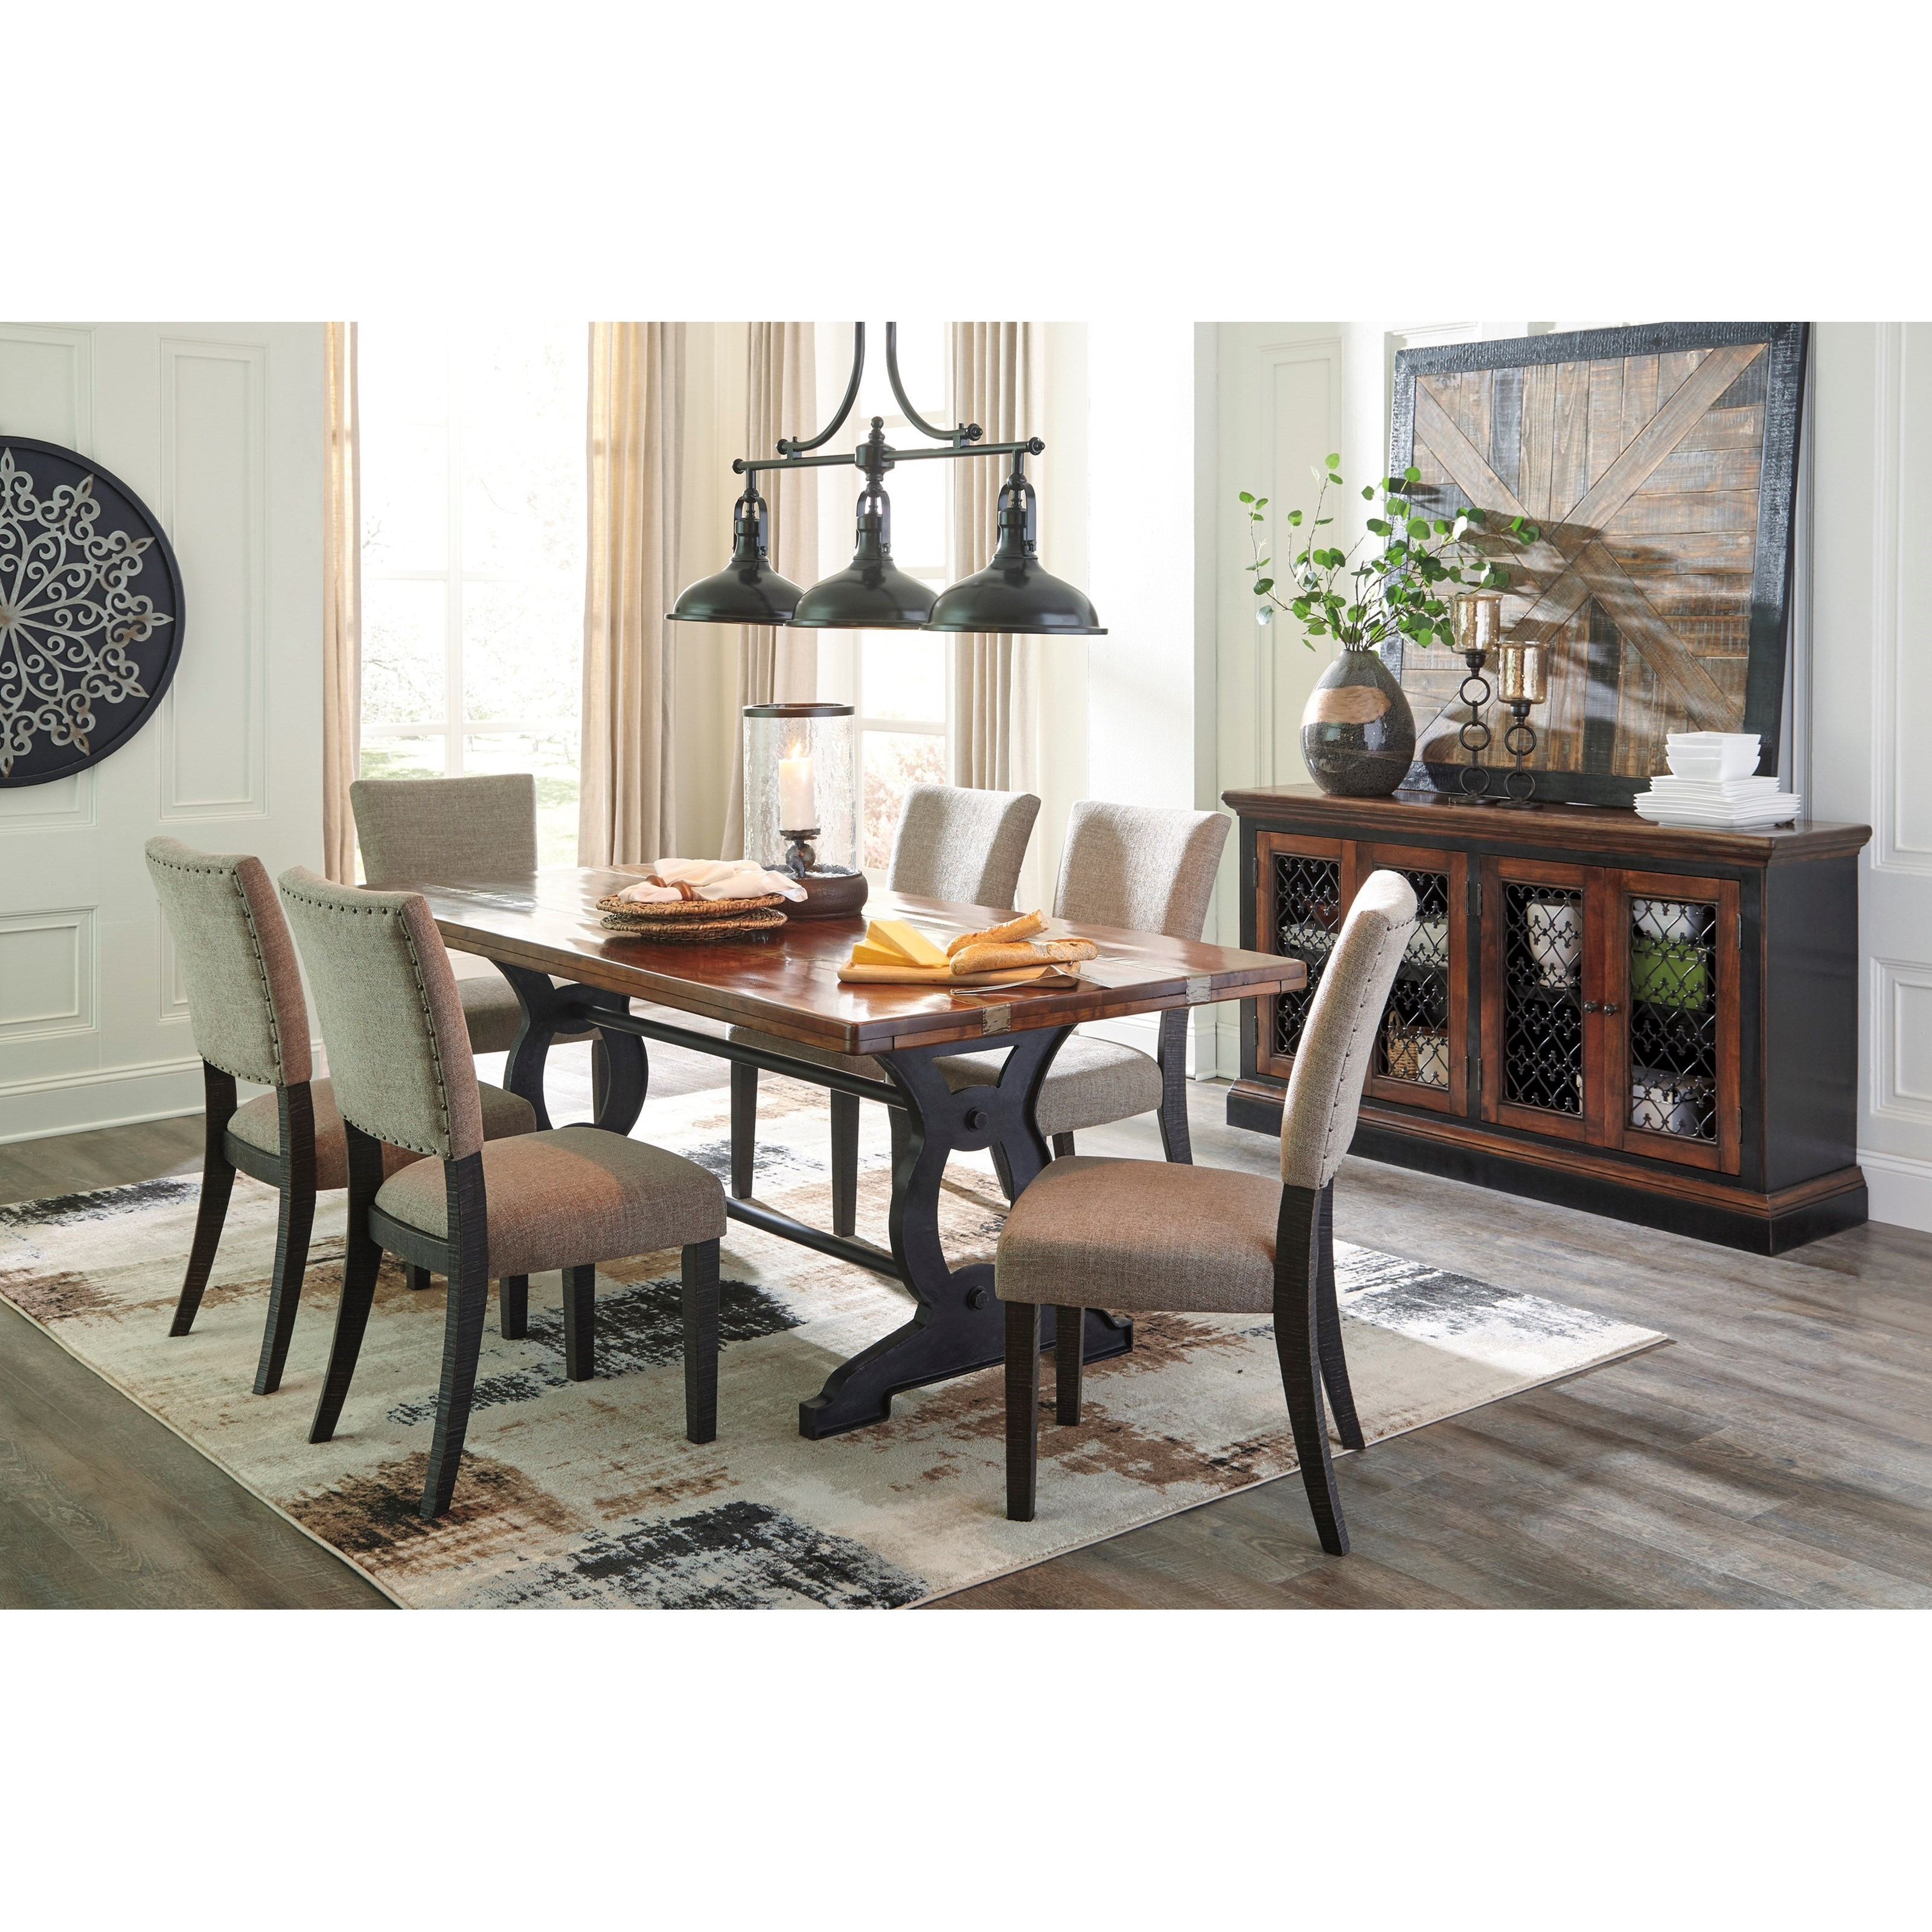 Signature design by ashley zurani casual dining room group for Casual dining room decor